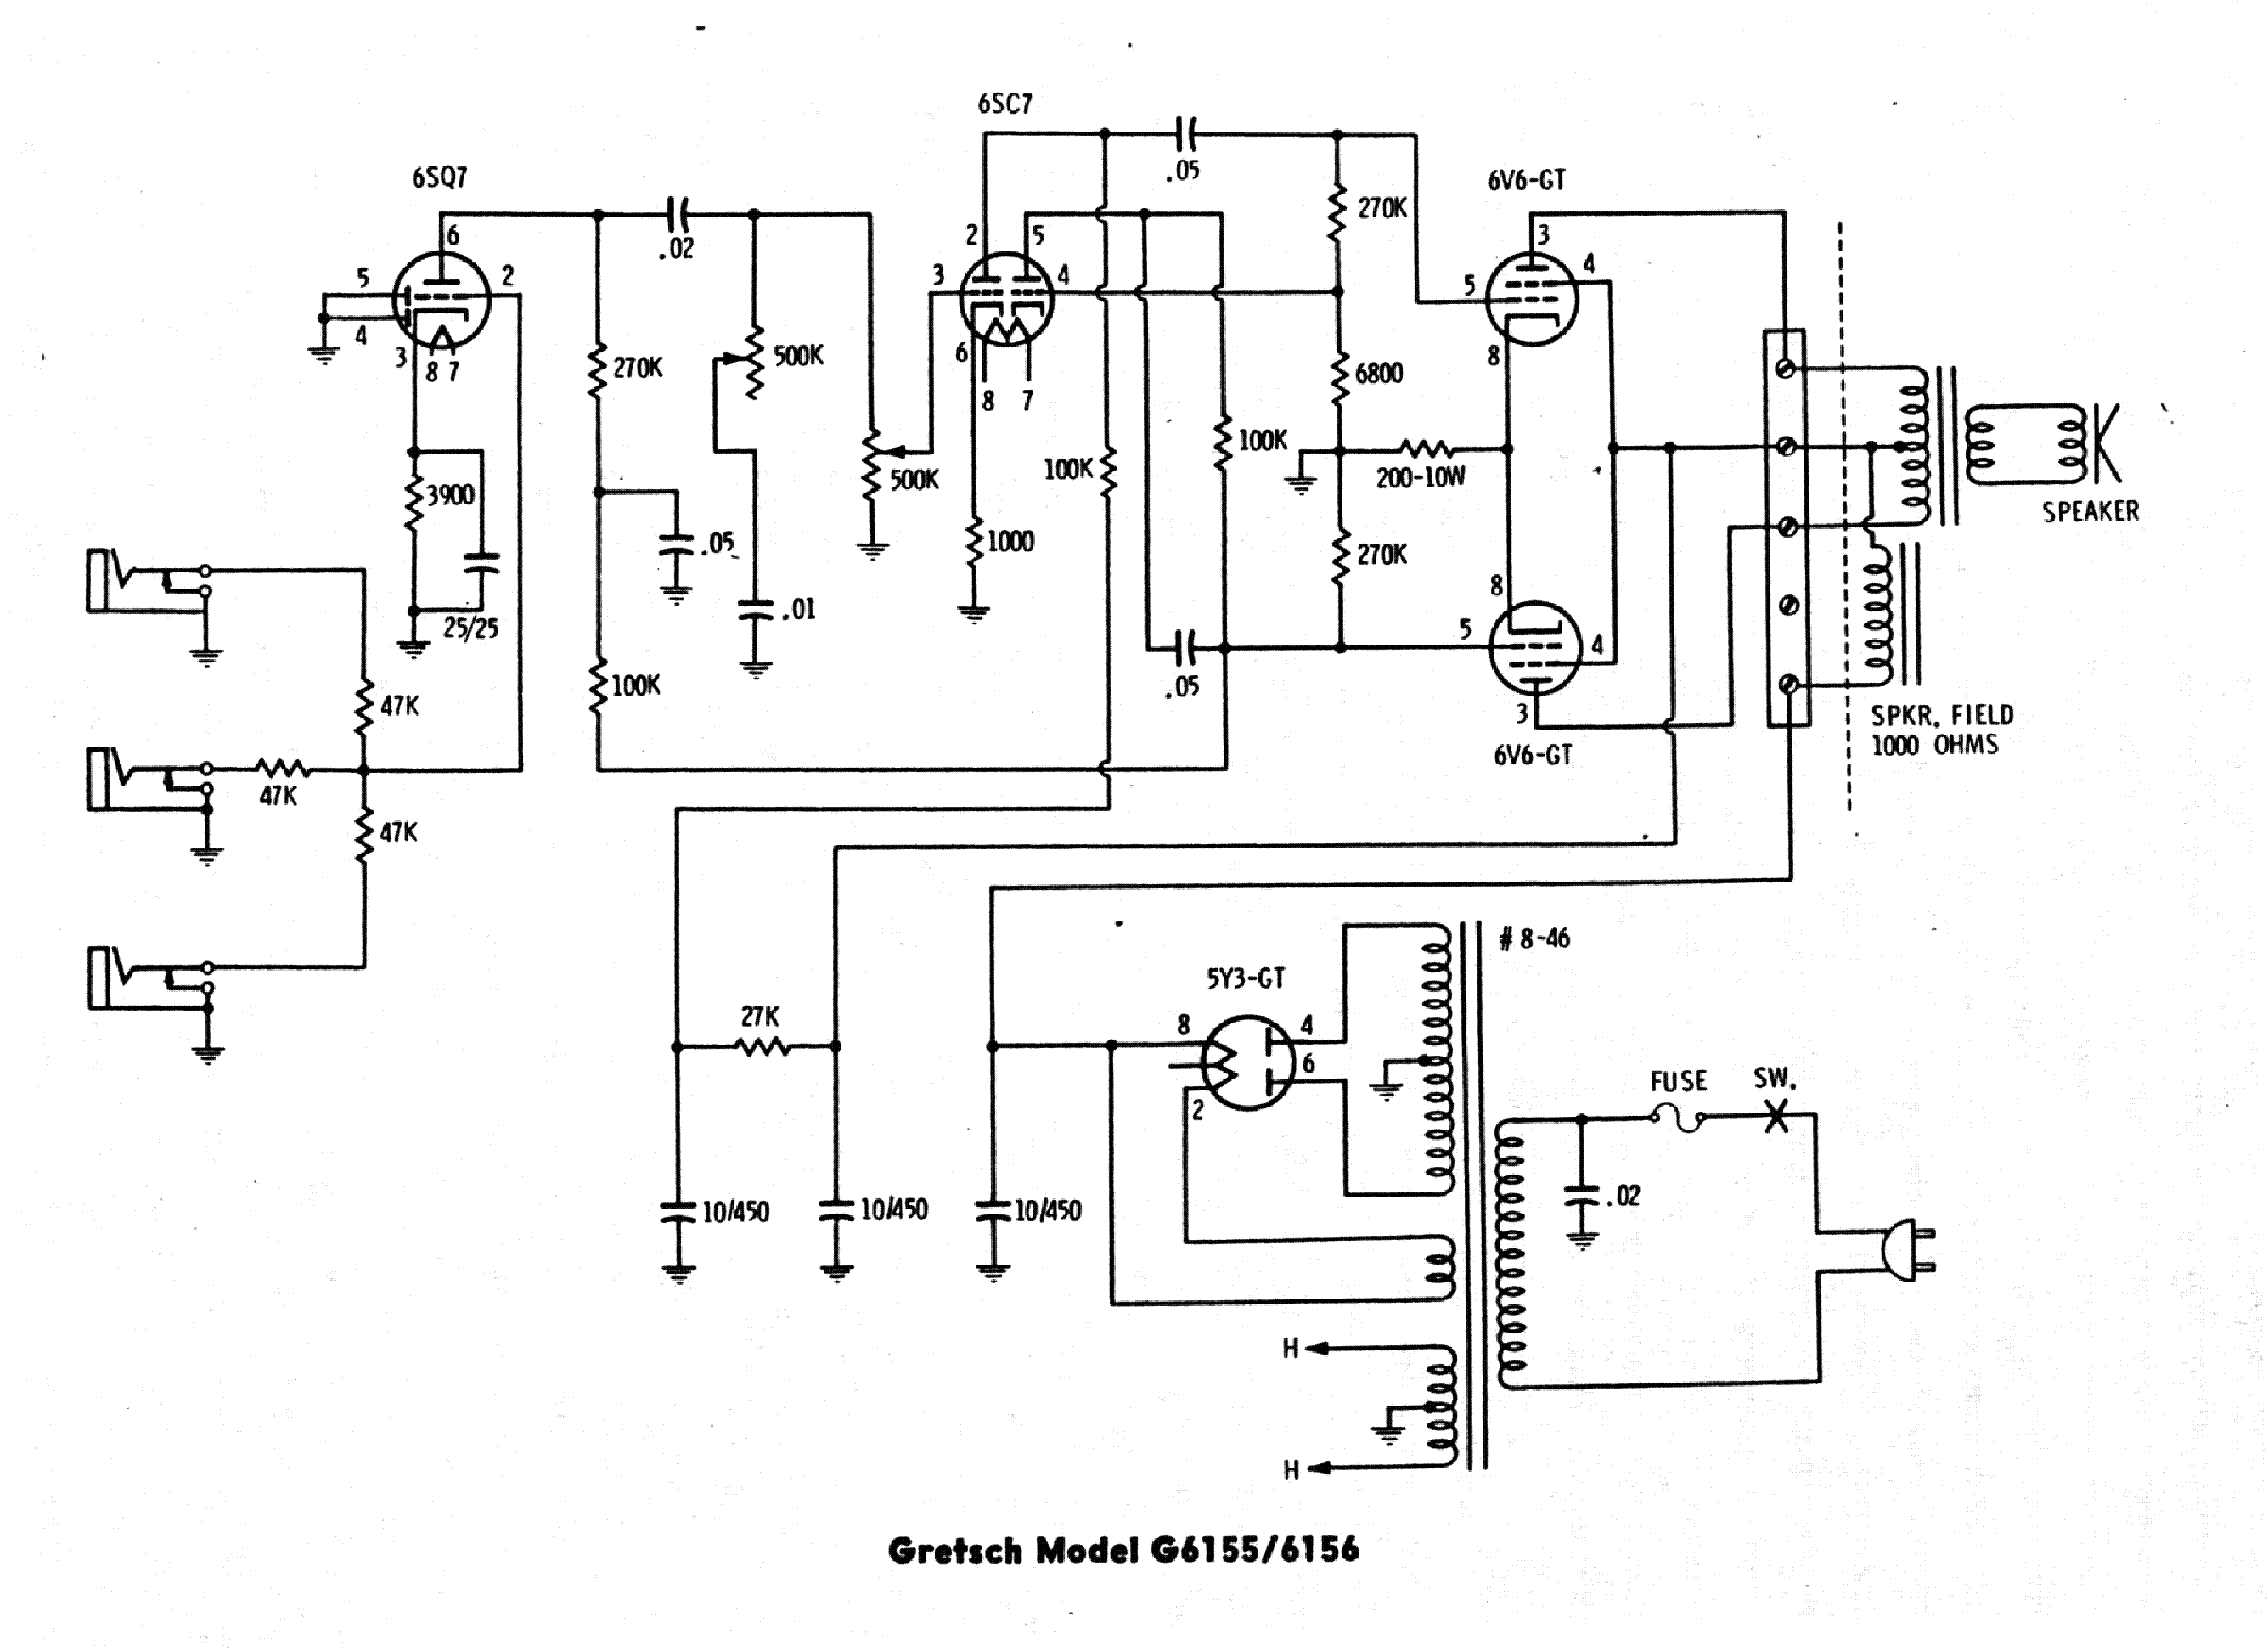 gretsch g6155 g6156 sch service manual download  schematics  eeprom  repair info for electronics